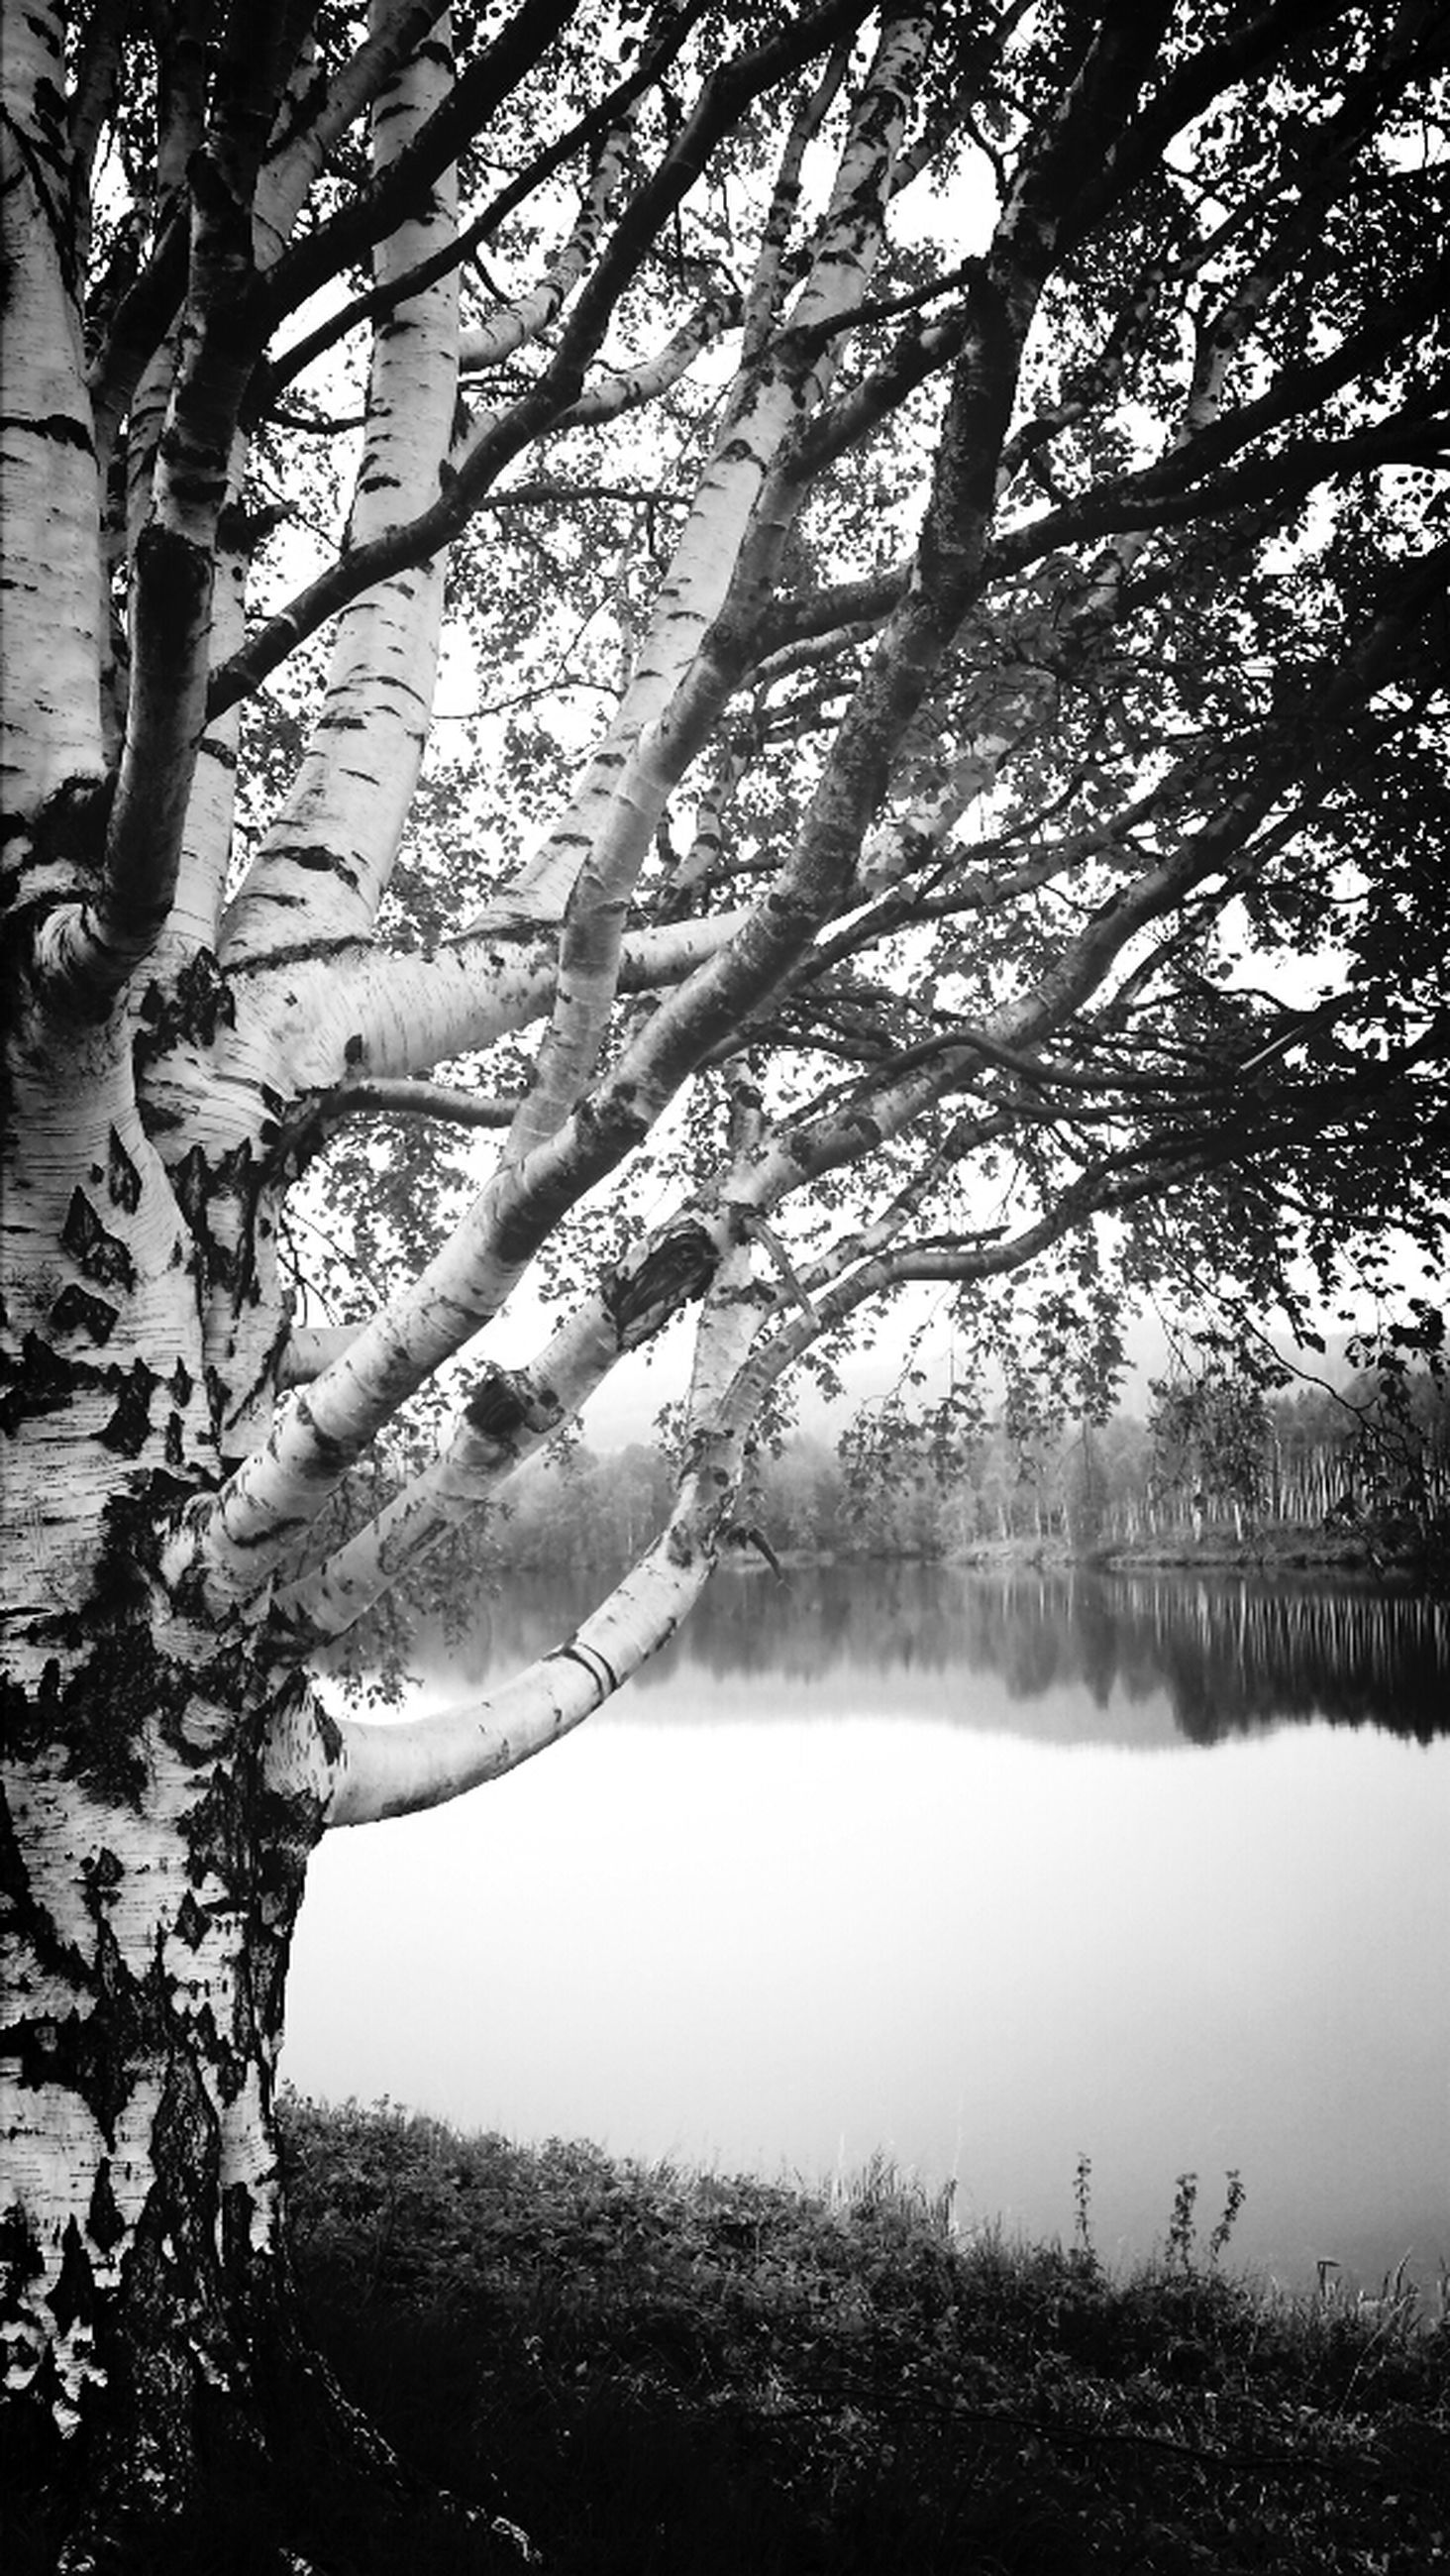 tree, branch, water, tranquility, tranquil scene, lake, nature, bare tree, beauty in nature, scenics, growth, tree trunk, sky, reflection, day, river, lakeshore, outdoors, non-urban scene, idyllic